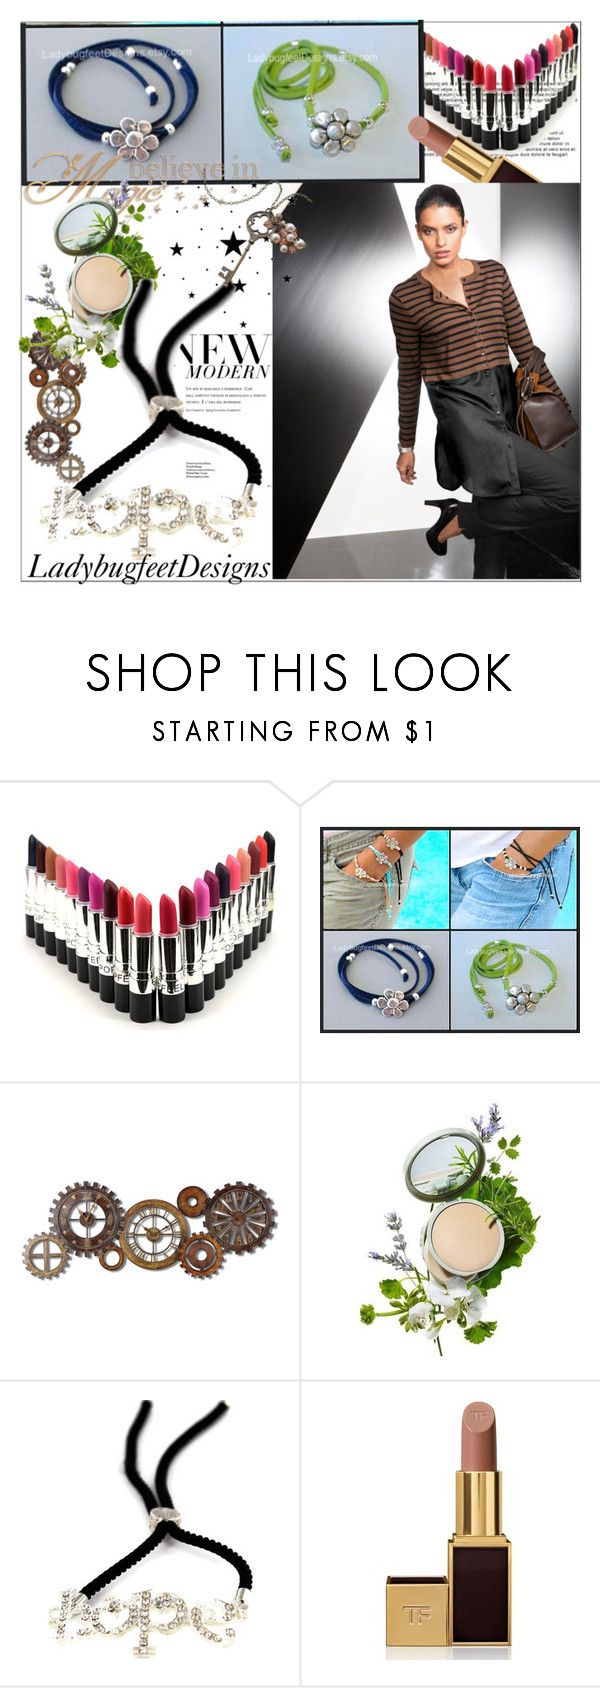 LadybugfeetDesigns#37 by sabahetasaric on Polyvore featuring Bølo, Origins, Tom Ford, WALL and Amica